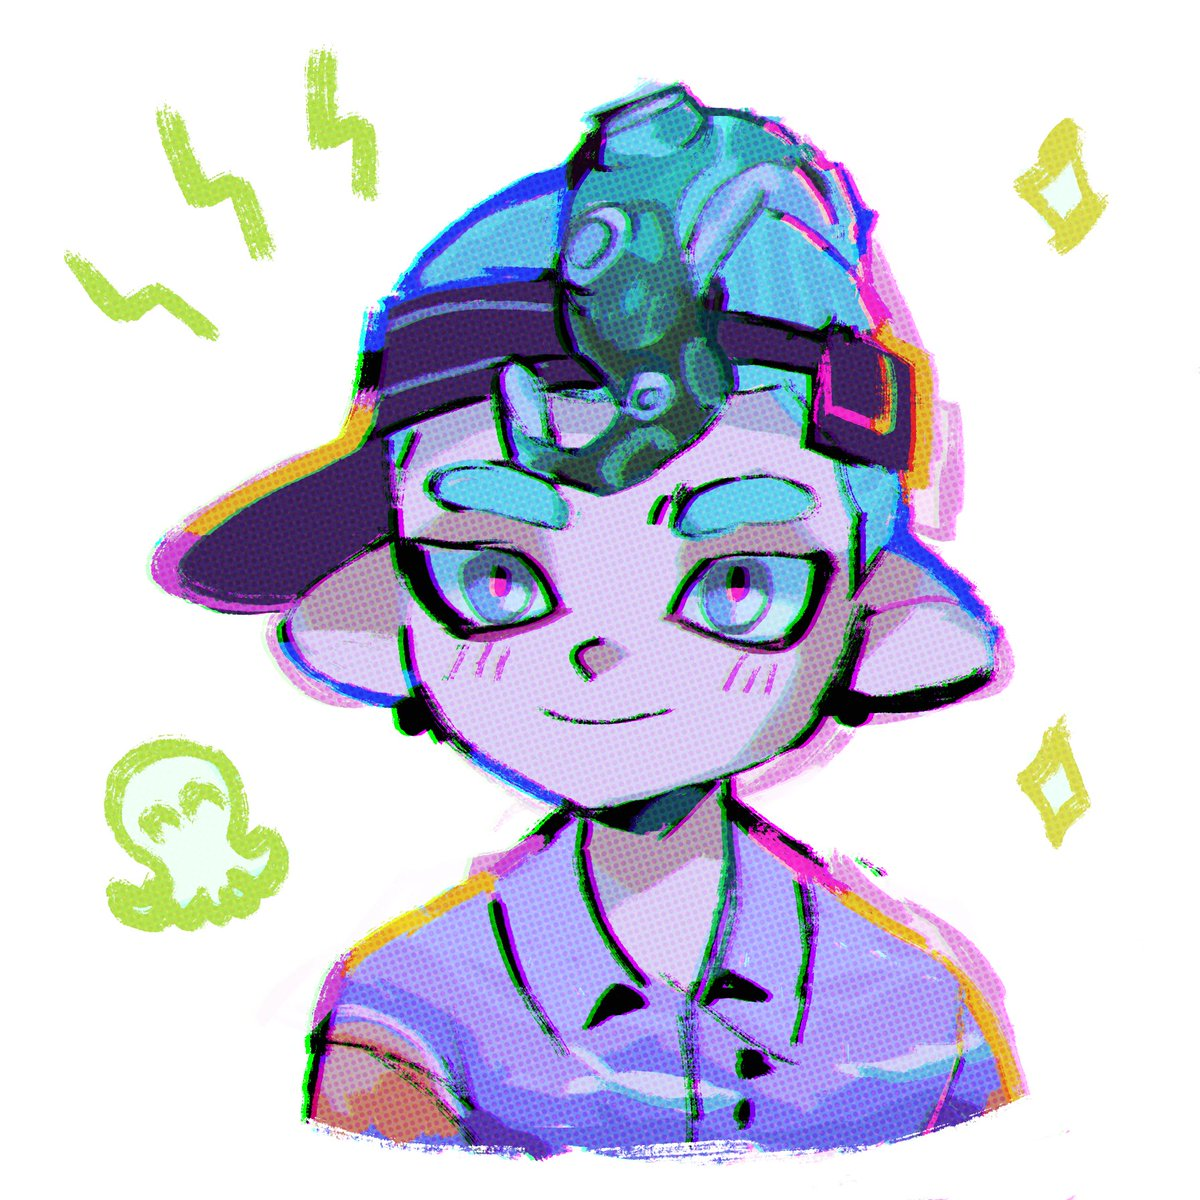 drawing of my octo boy in splat2!! i love the octos... wee <br>http://pic.twitter.com/xEIcYP3Q6U